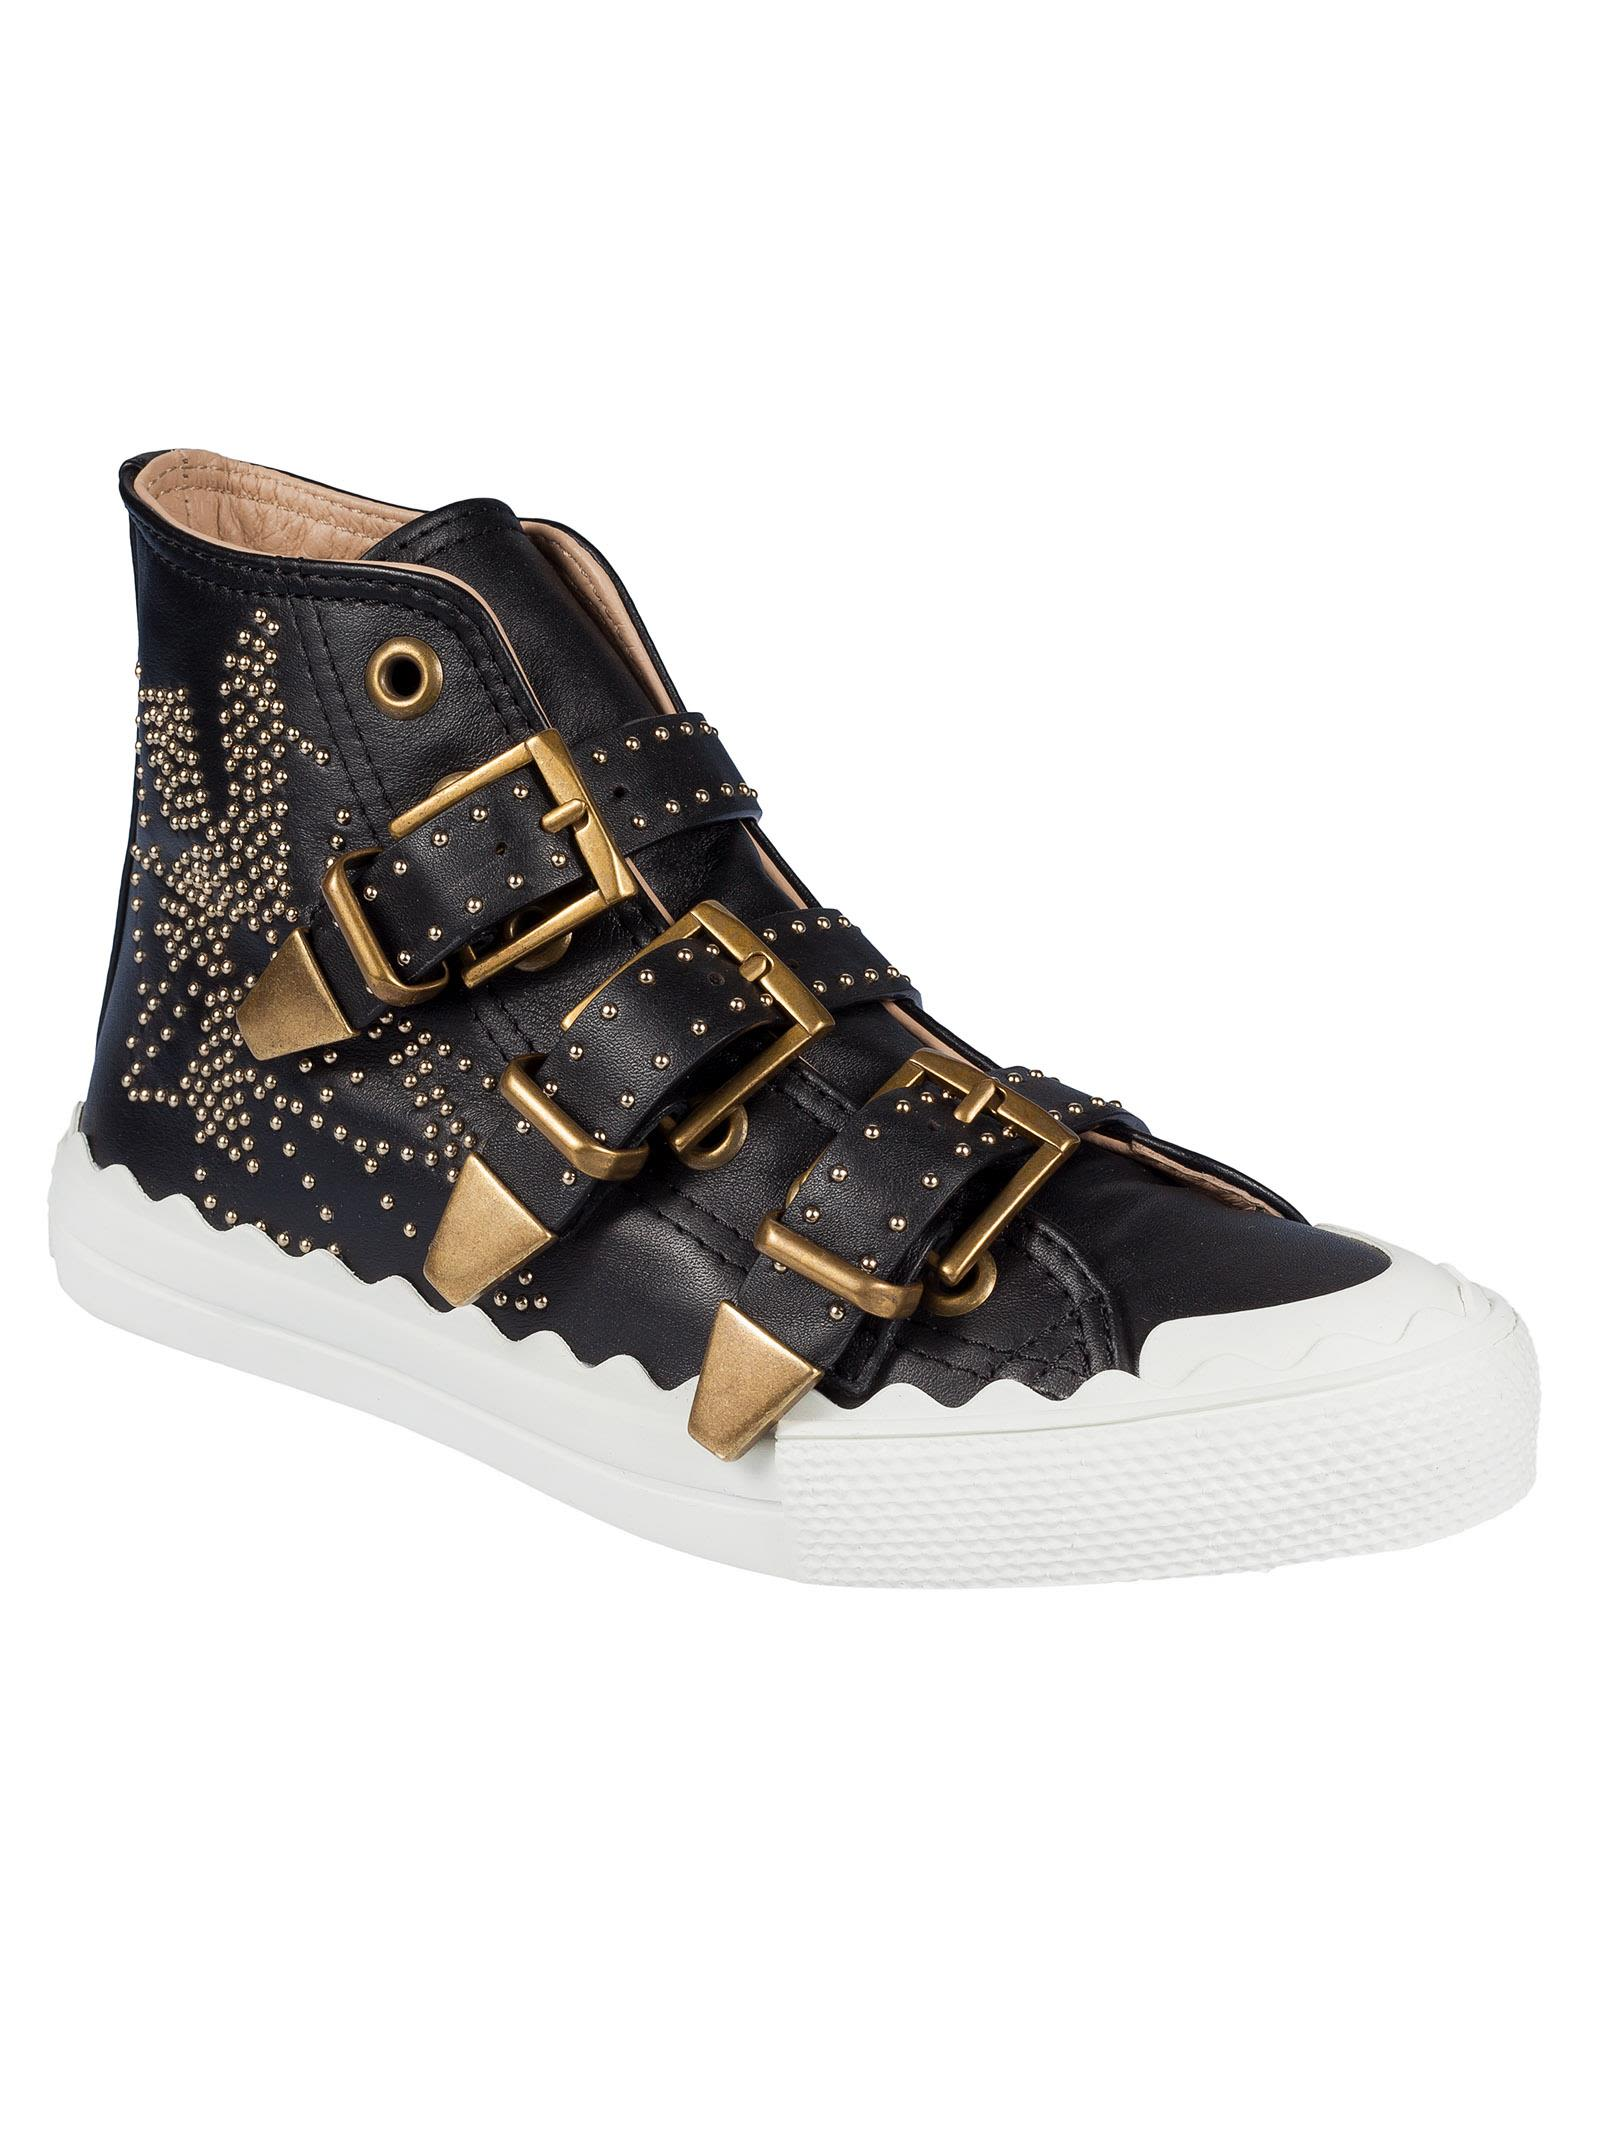 outlet recommend cheap sale largest supplier Chloé embellished sneakers SlEYaMvOV